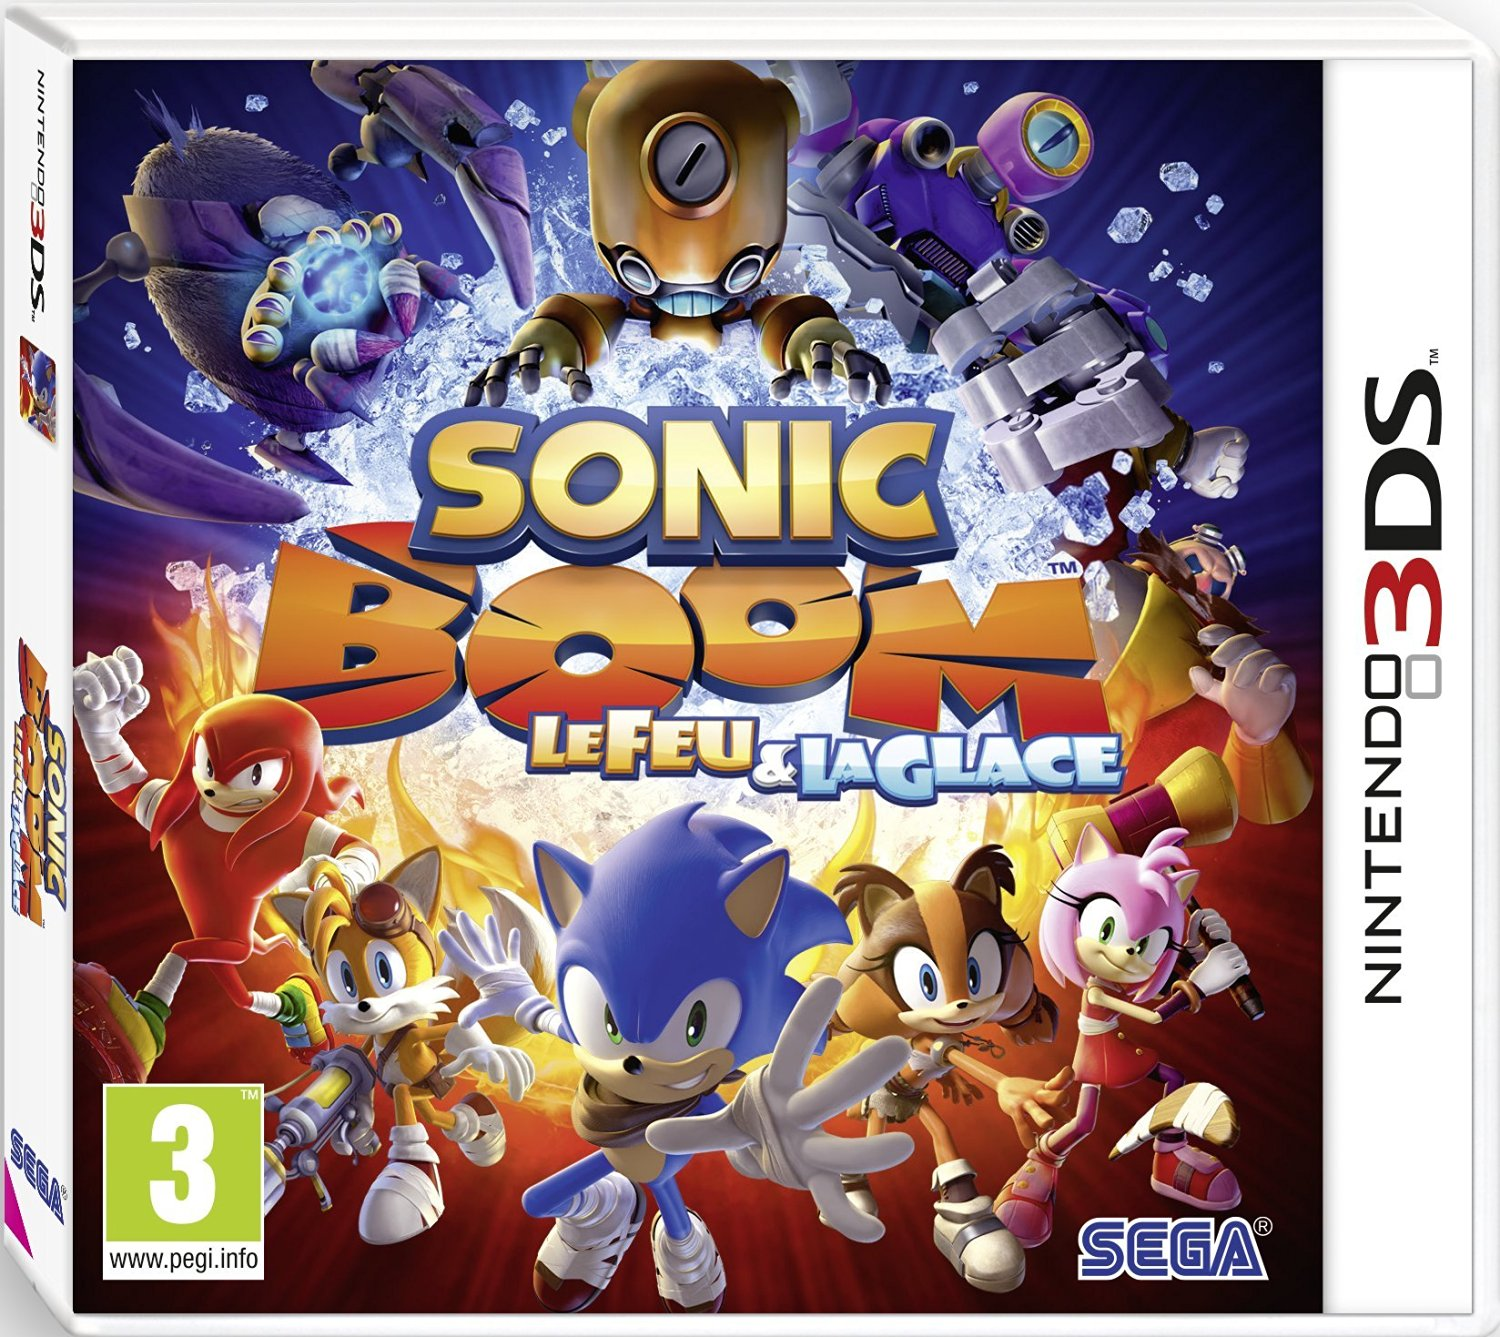 test sonic boom le feu et la glace sur 3ds le mag jeux high tech. Black Bedroom Furniture Sets. Home Design Ideas